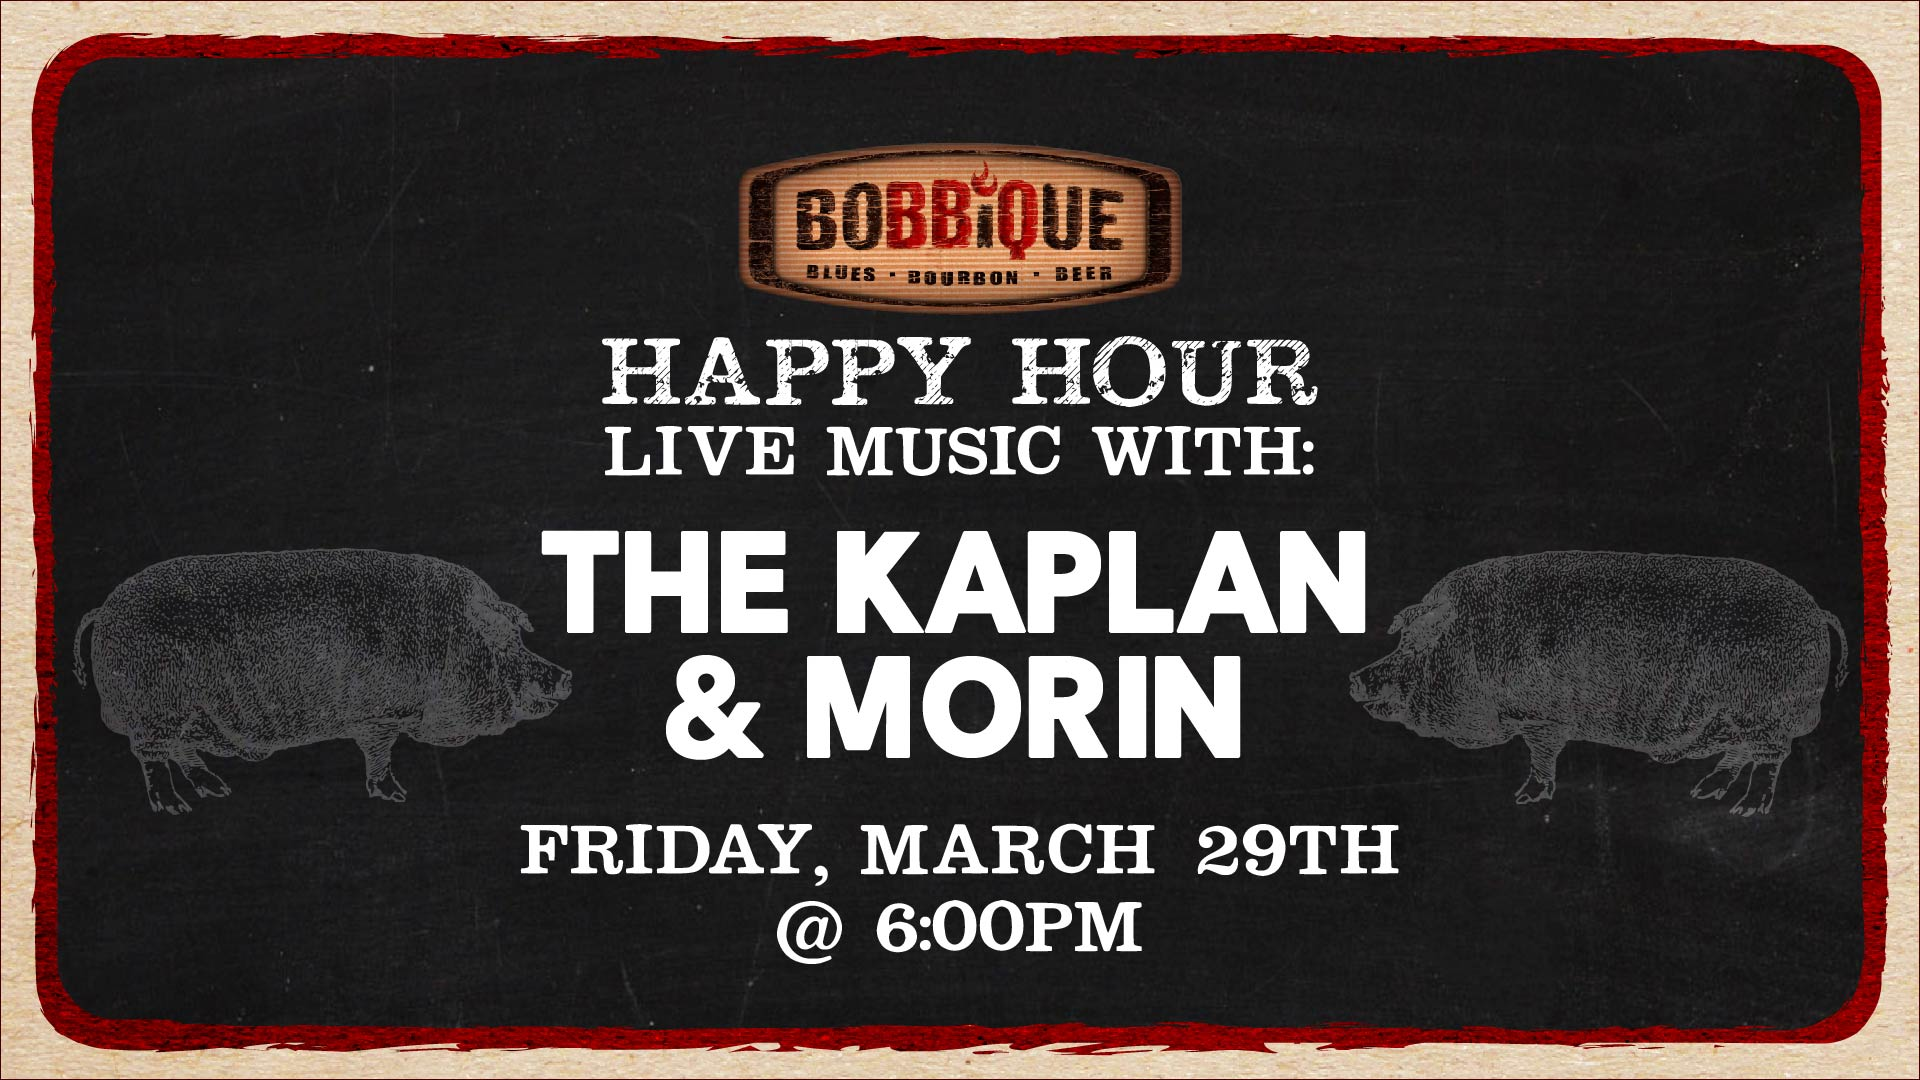 Happy Hour with The Kaplan & Morin